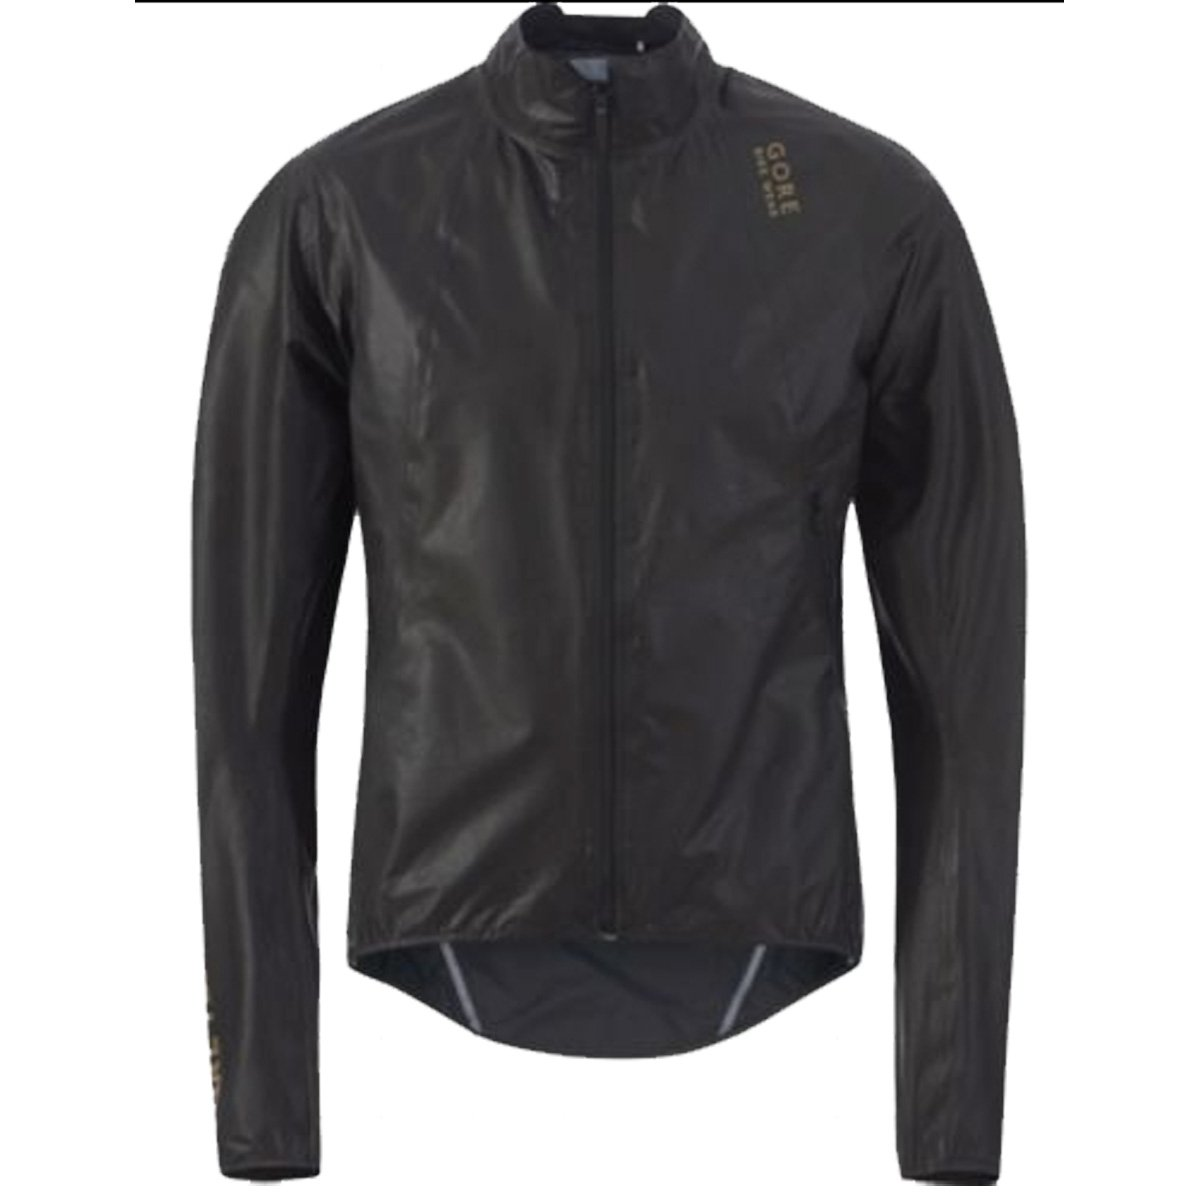 GORE WEAR Herren One Gore-tex Active Bike Jacke